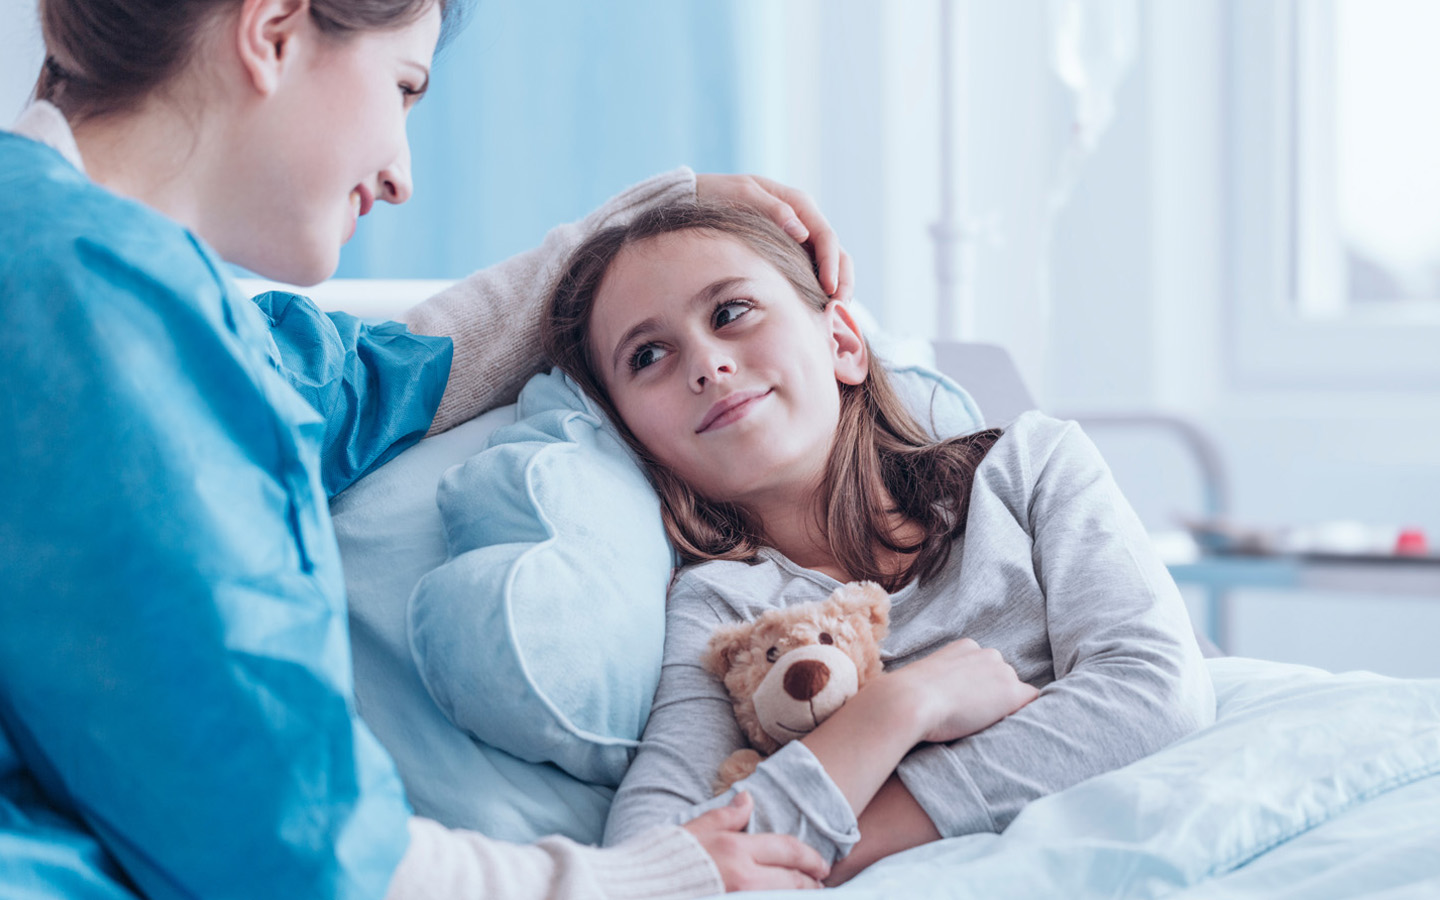 Doctor talking to child under her care